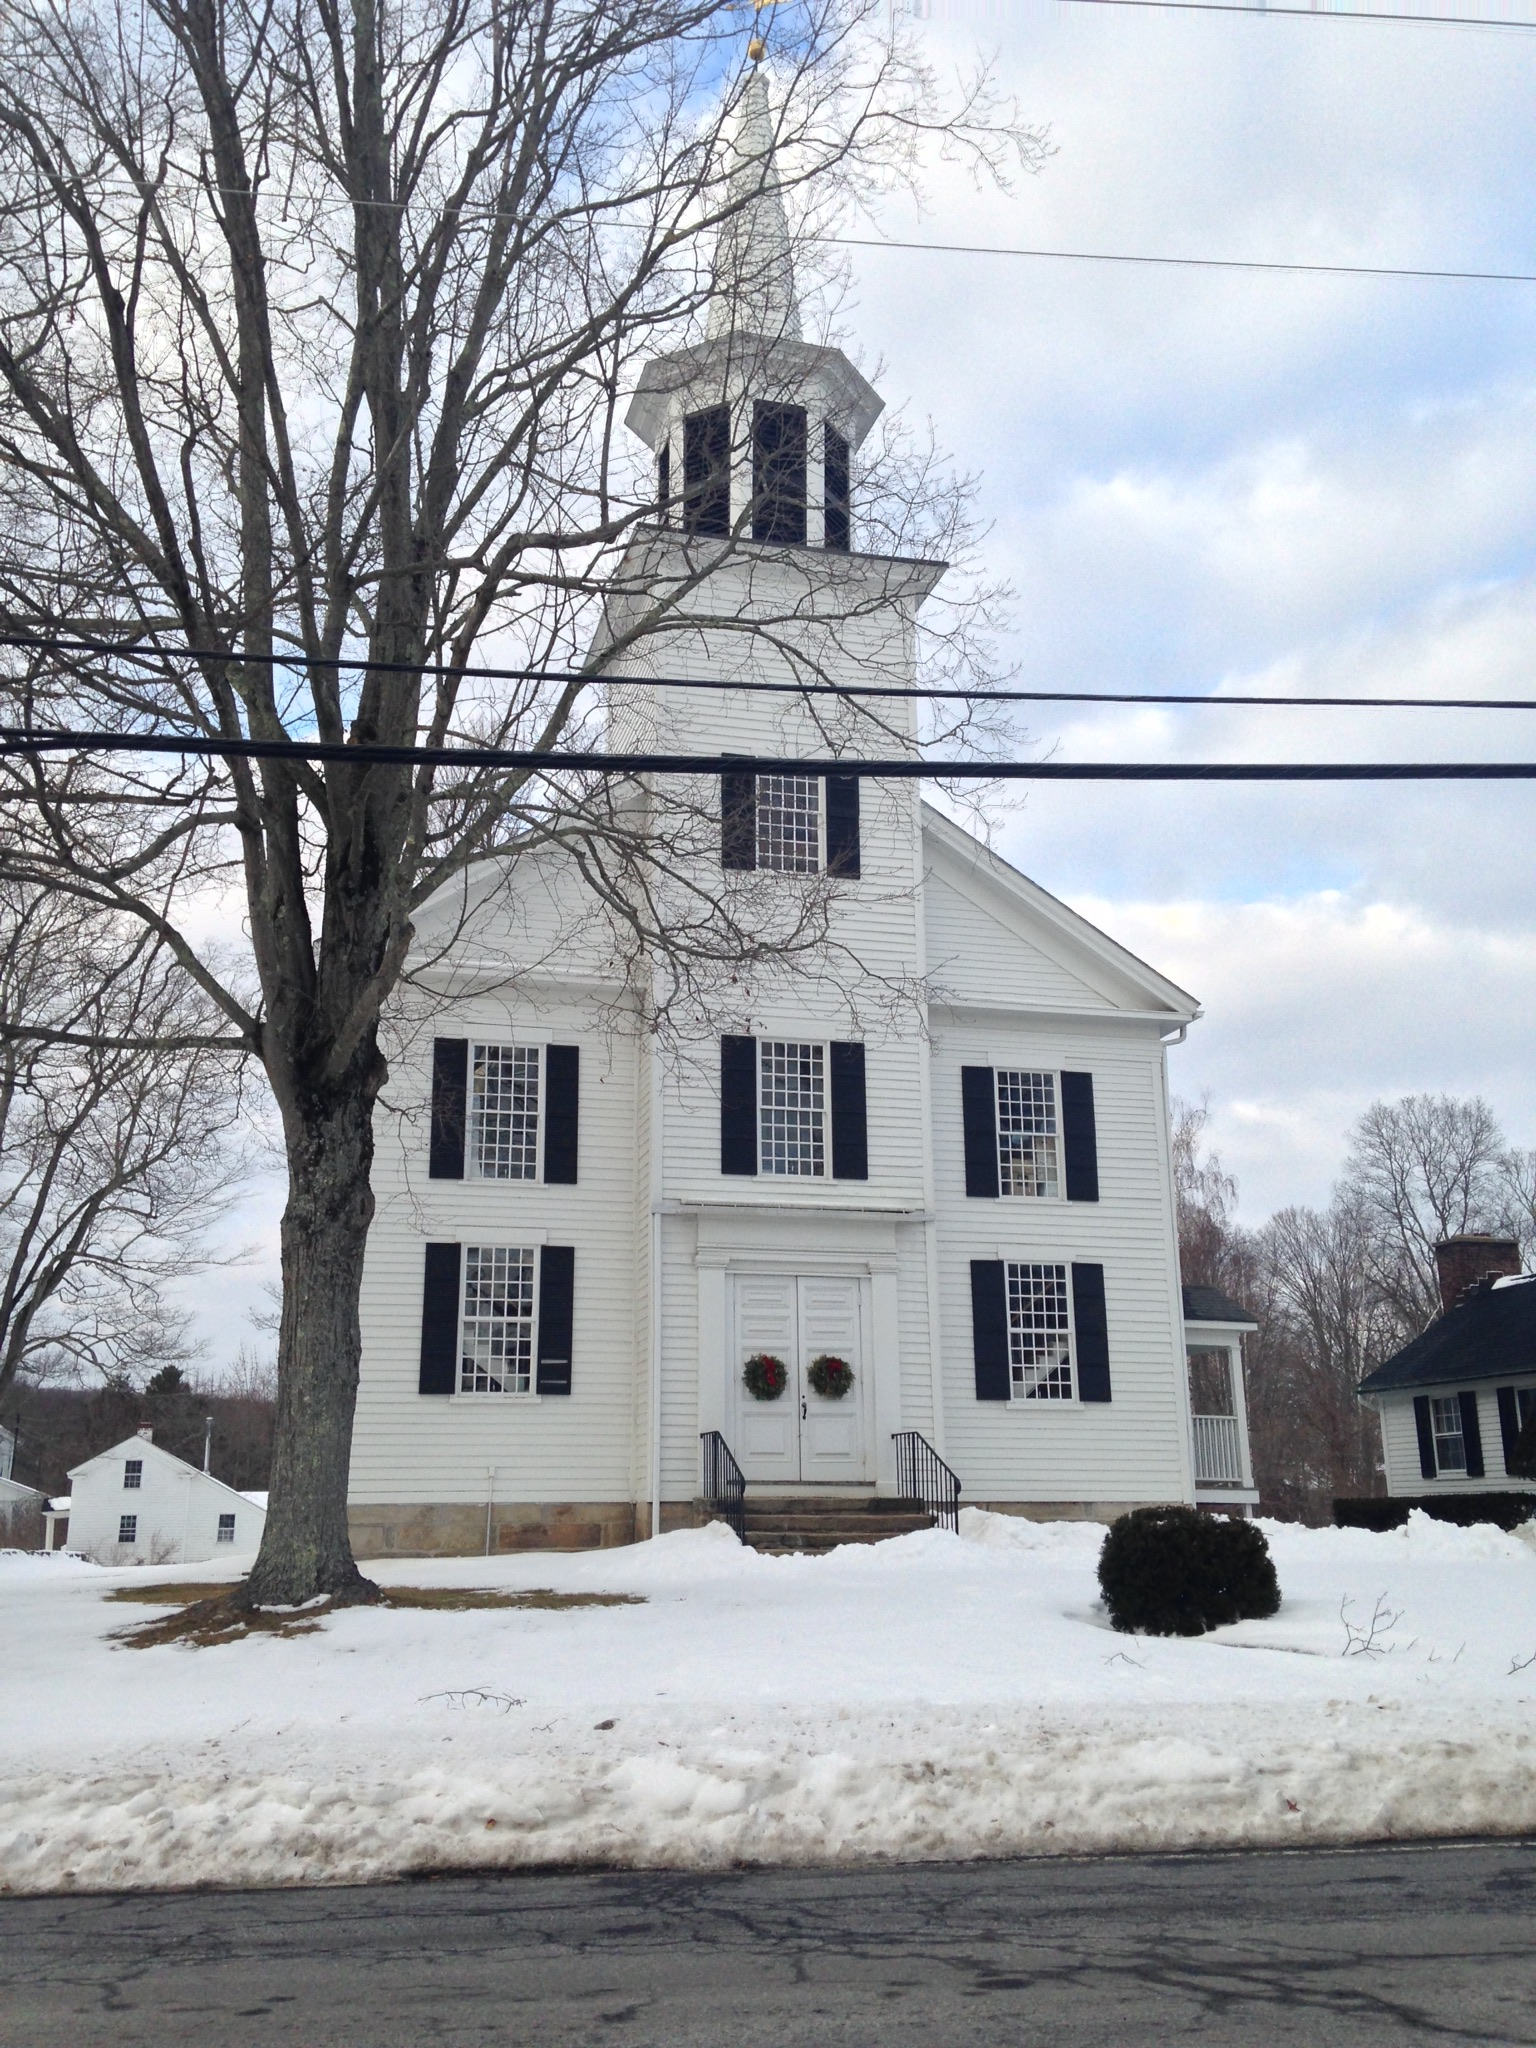 Bridgewater, CT church